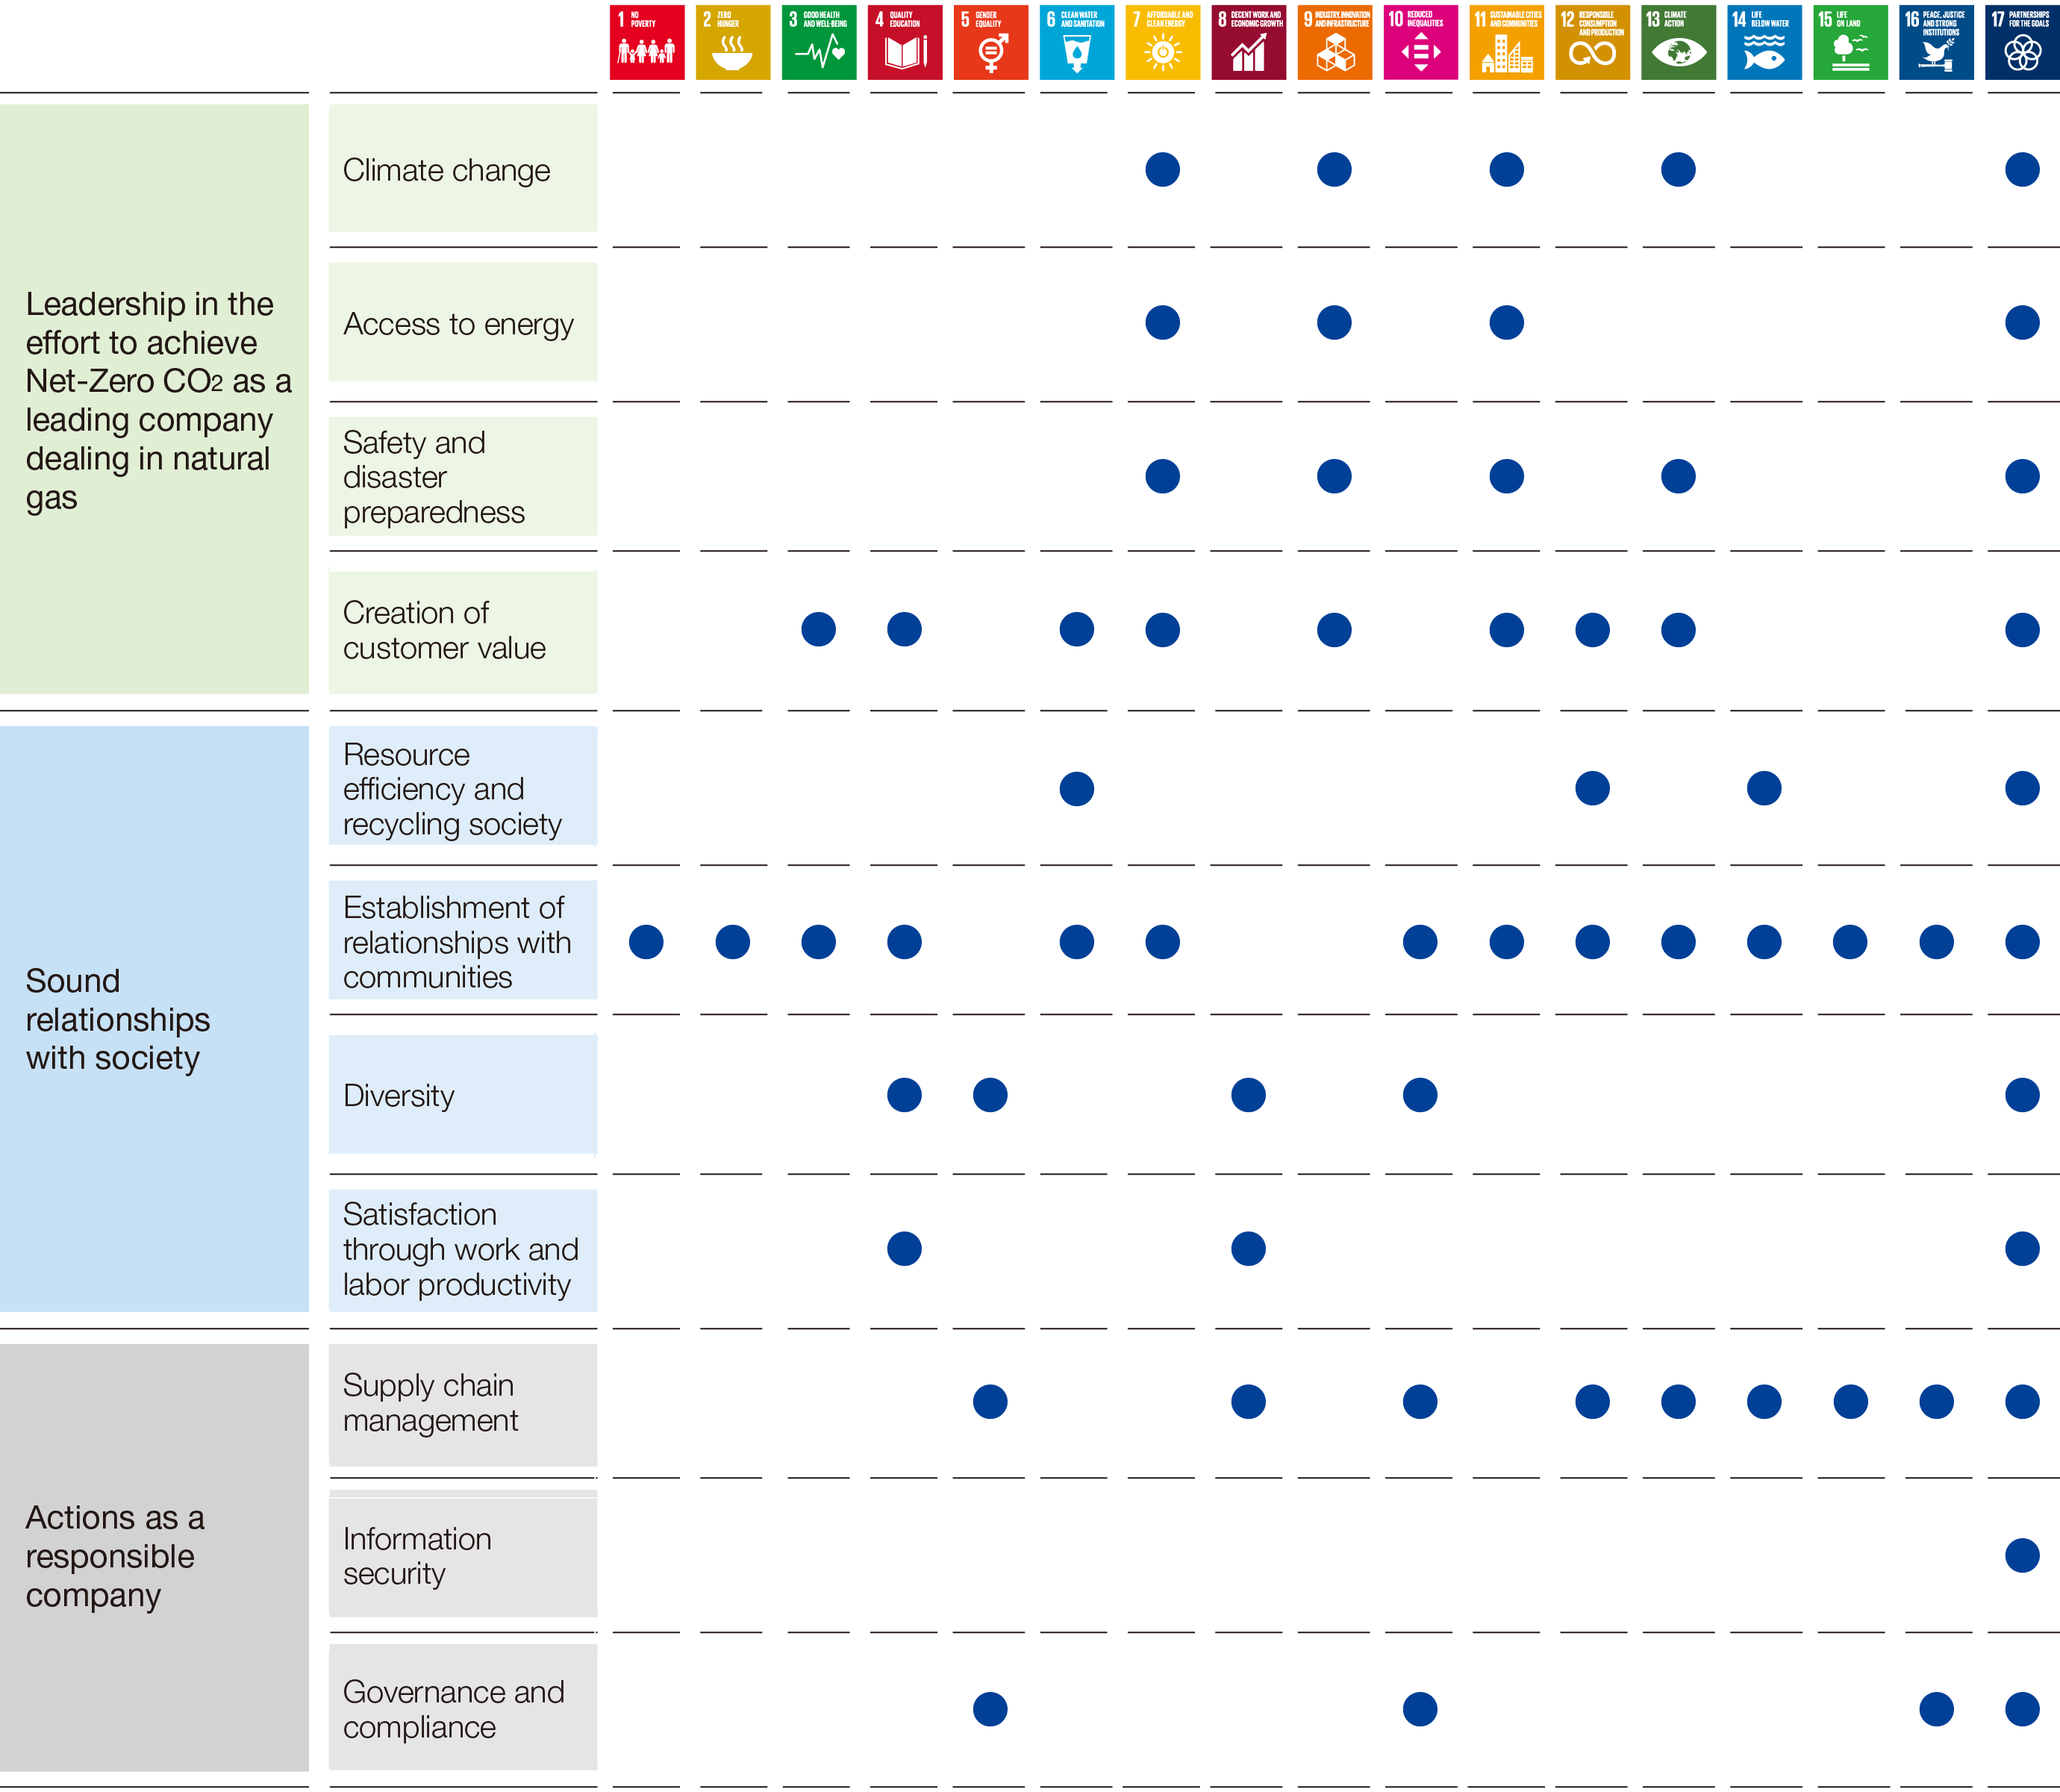 Relationships between materialities and SDGs